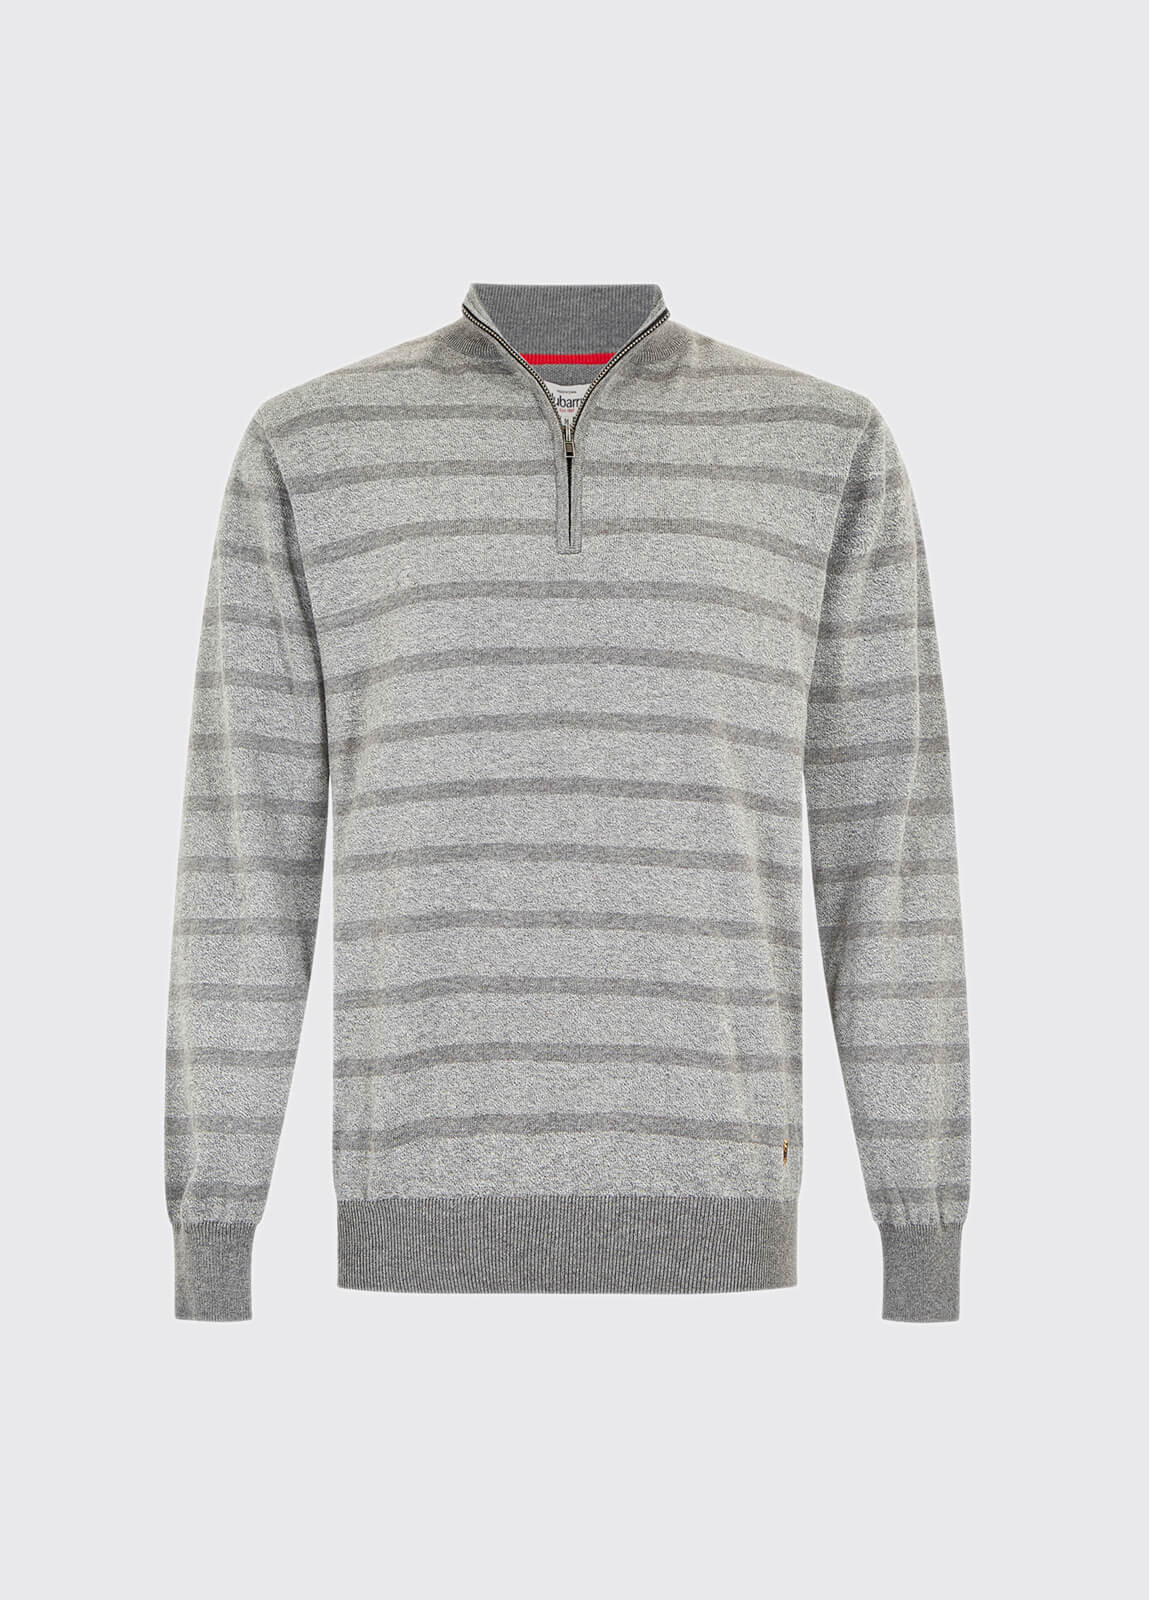 Abbeyville Sweater - Grey Multi